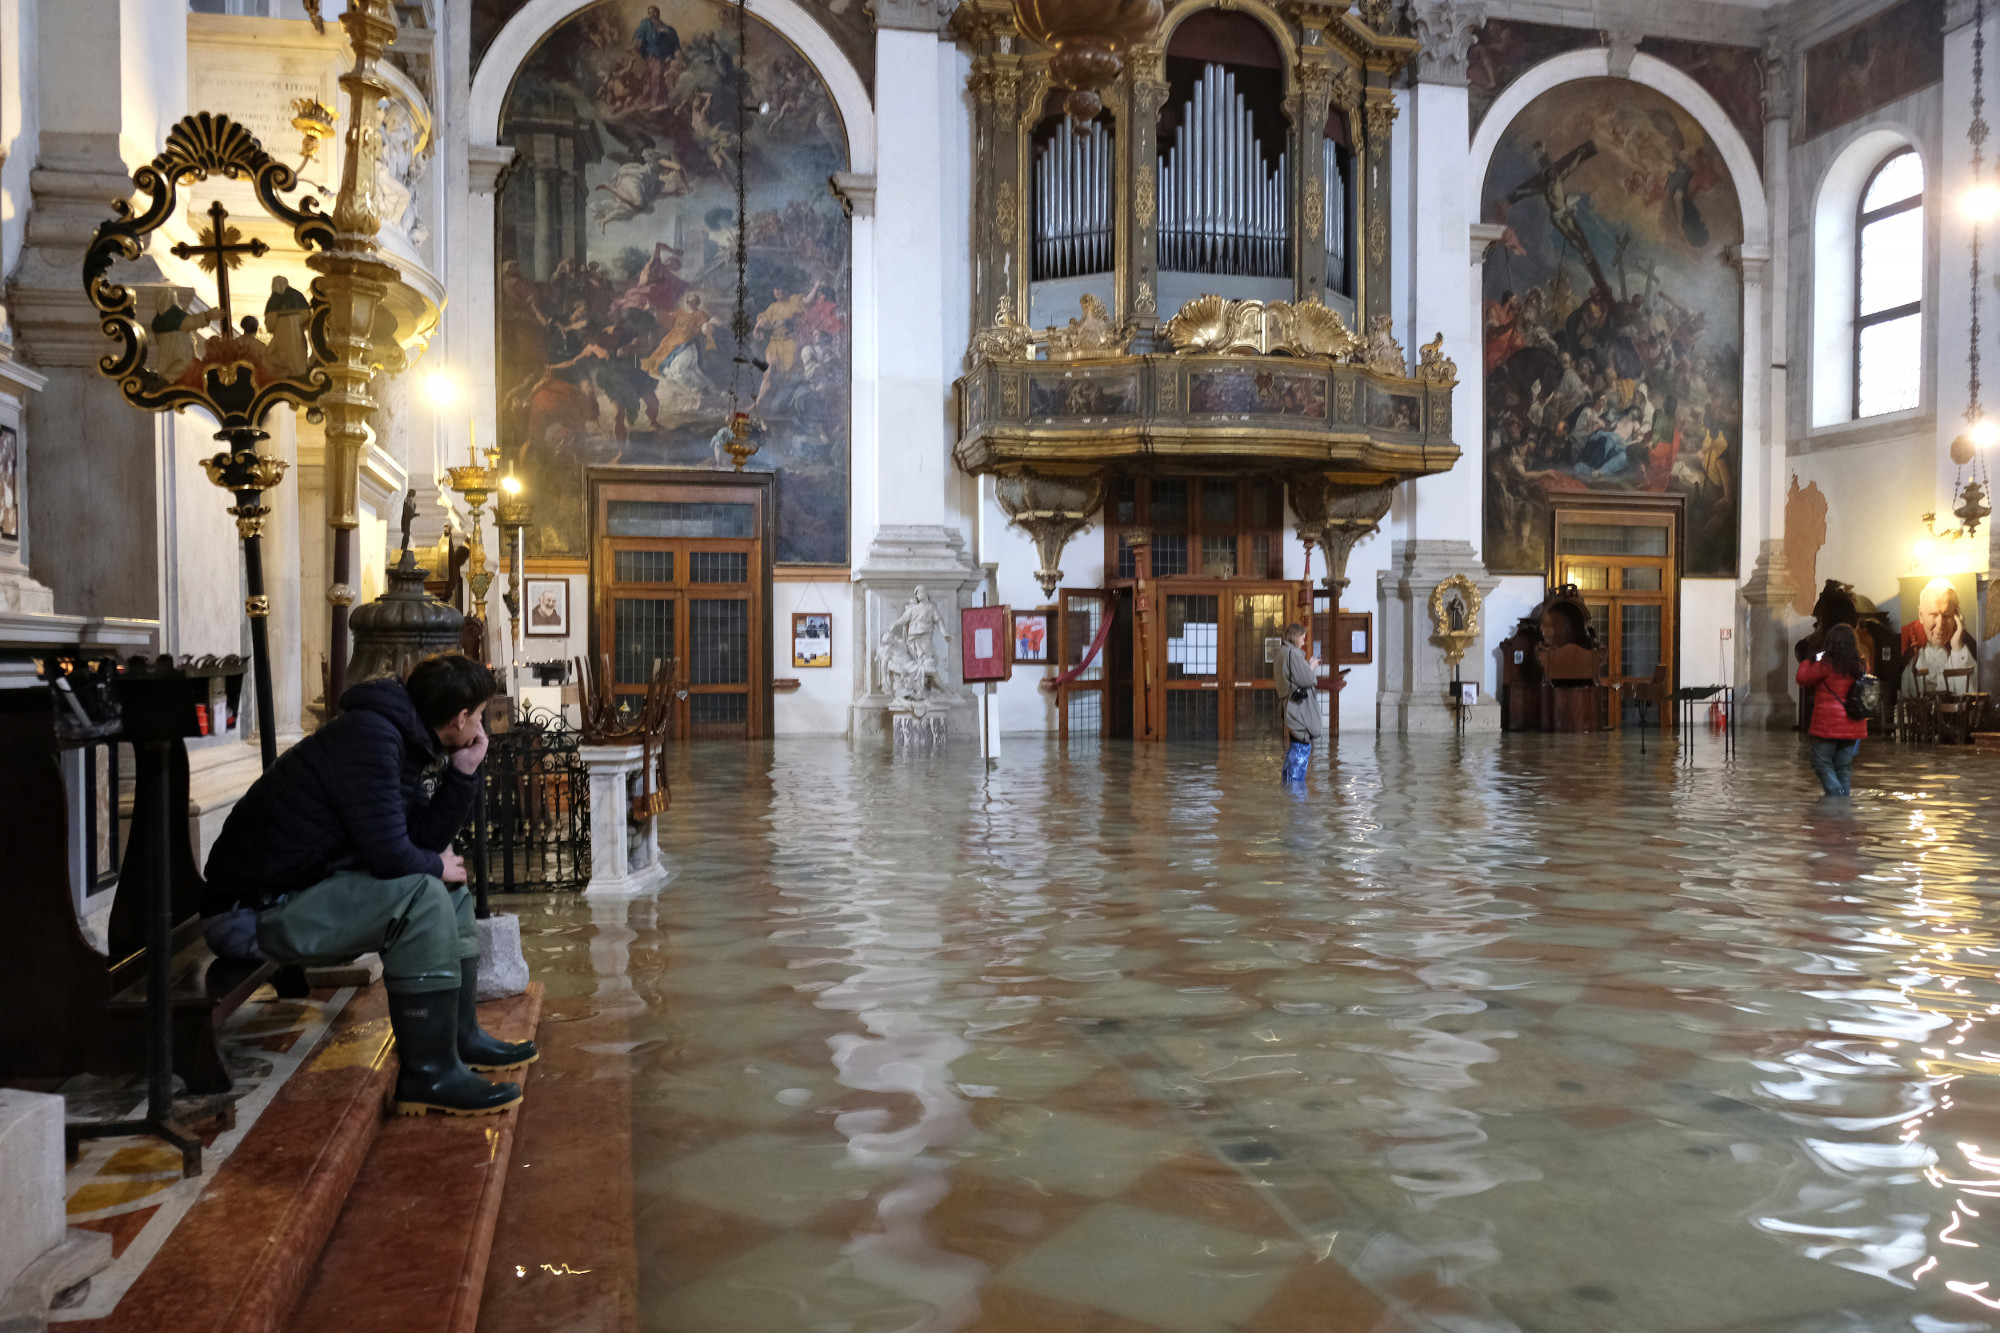 A flooded church